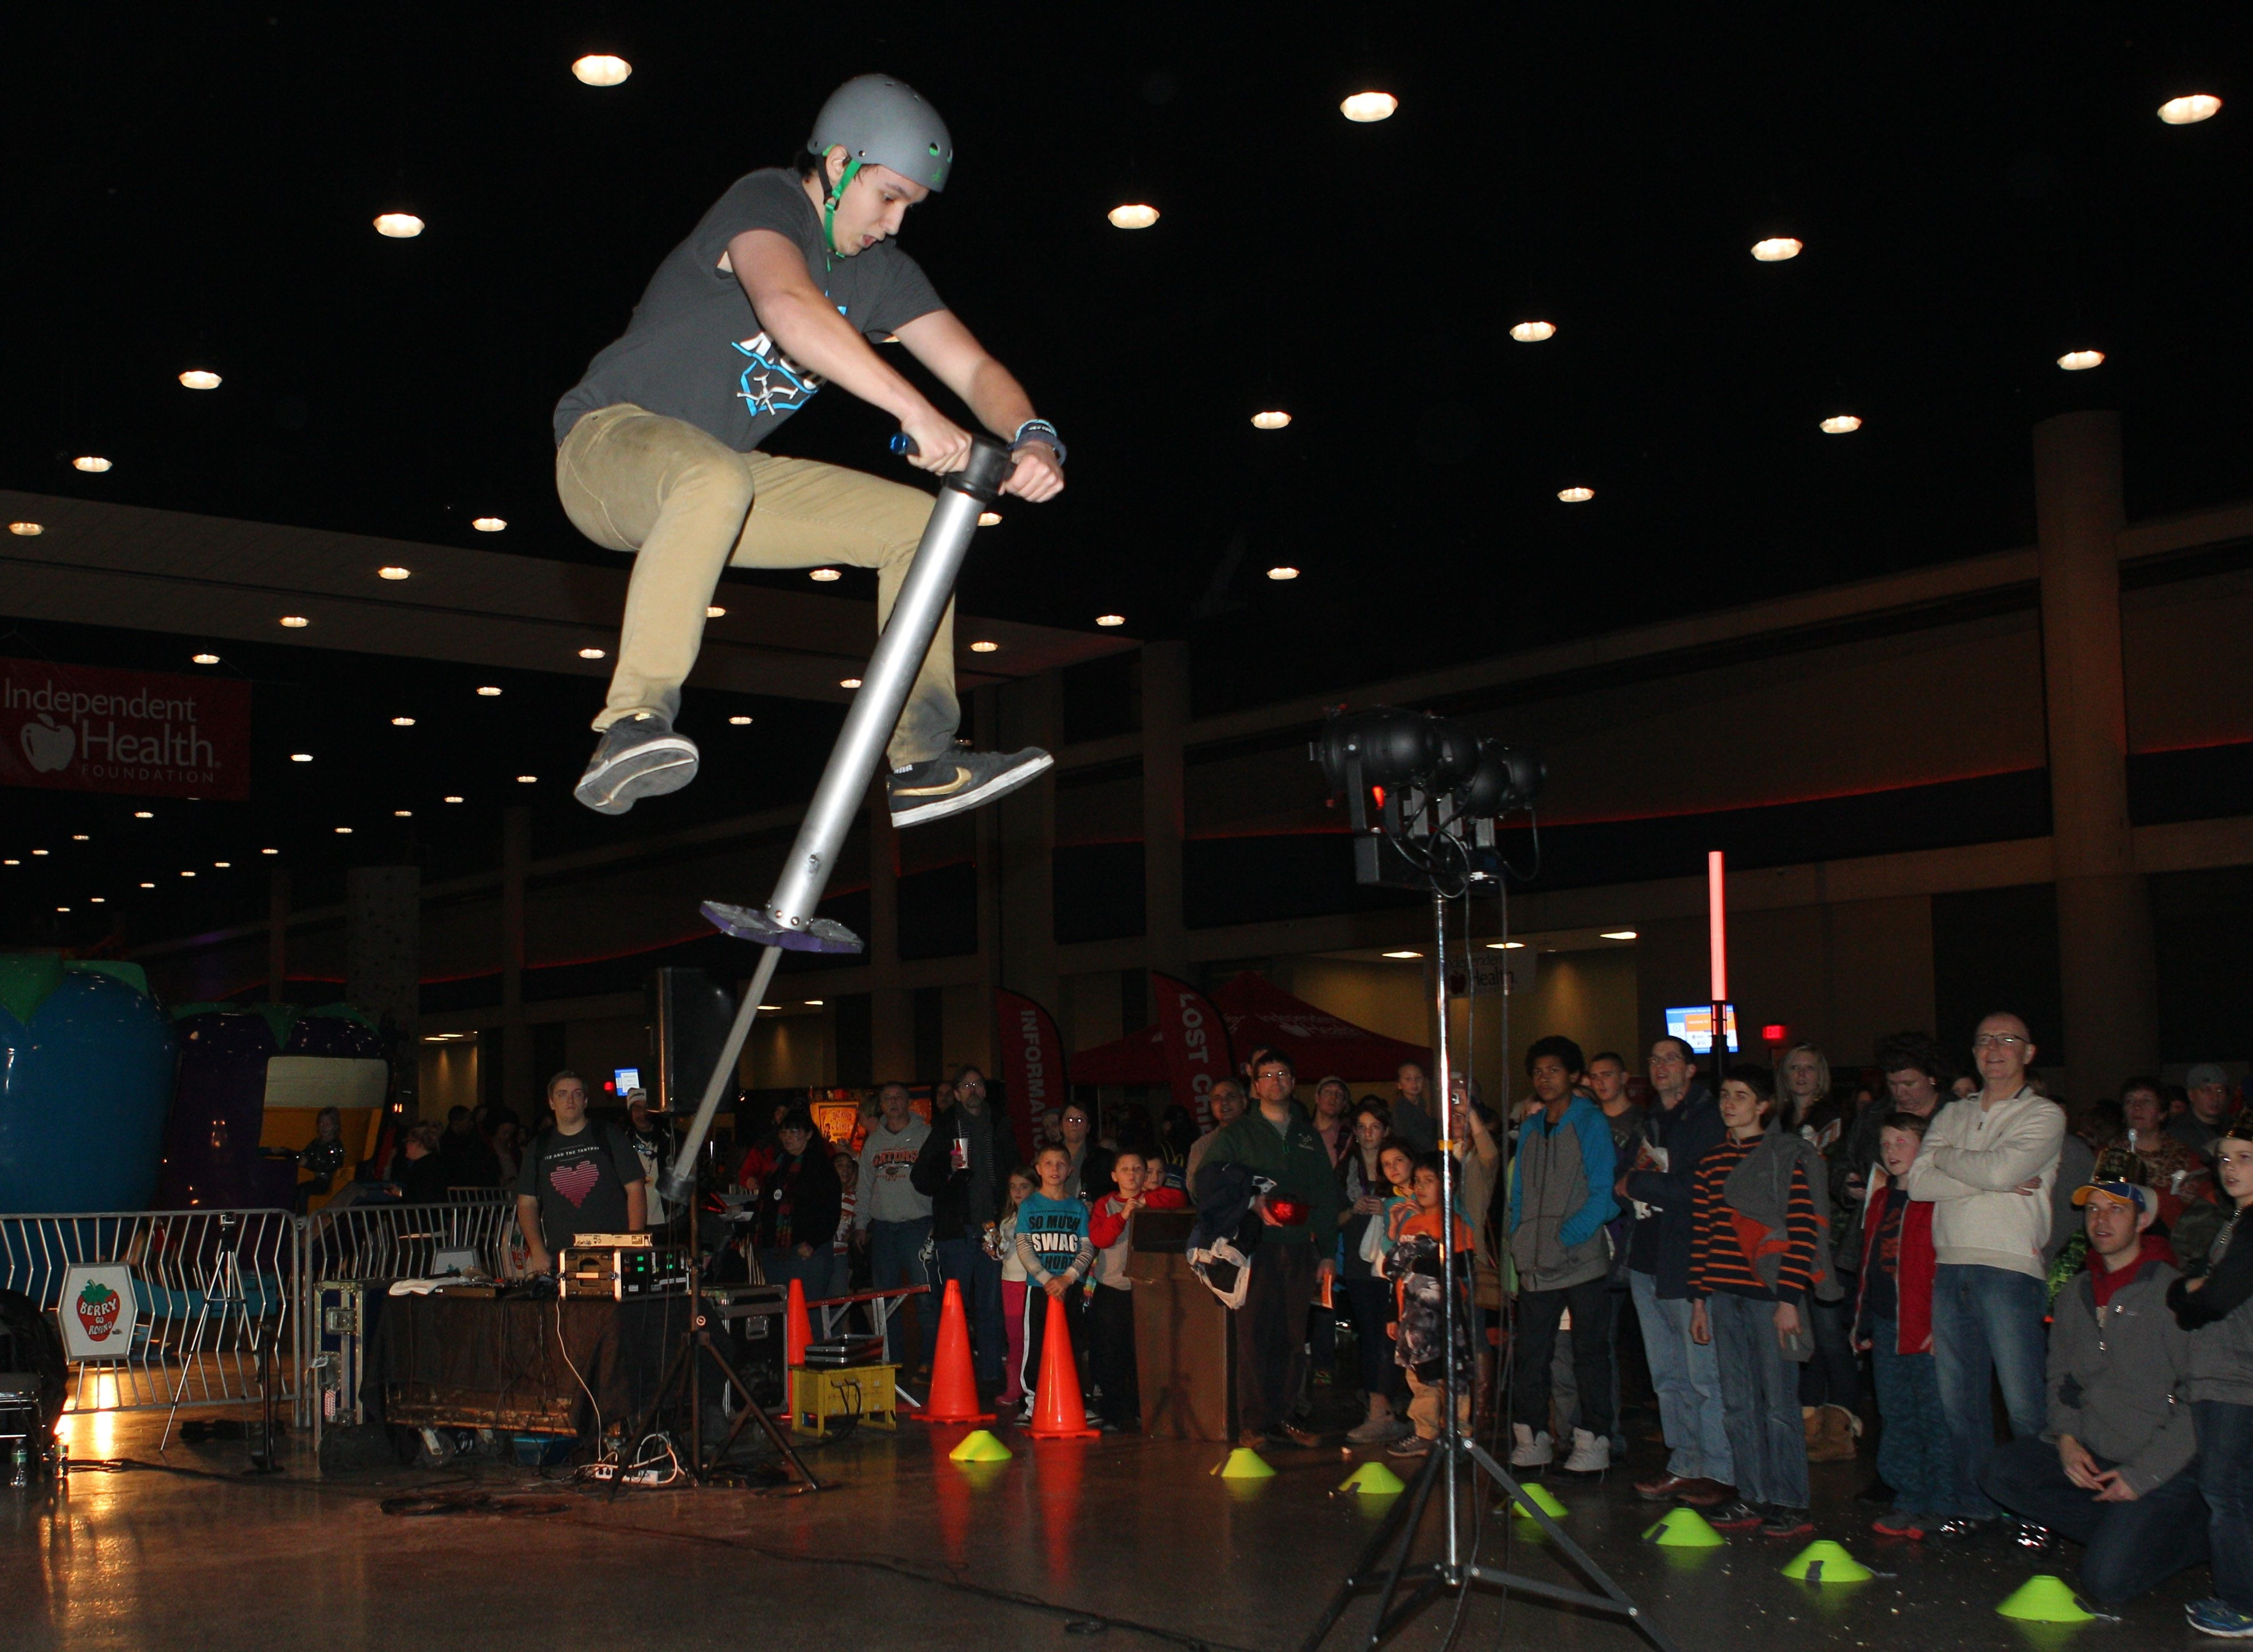 Steven Bennett, 16, a member of the Xpogo Stunt Team, entertains the crowd with his pogo jumping at First Night Buffalo at the Buffalo Convention Center Tuesday.